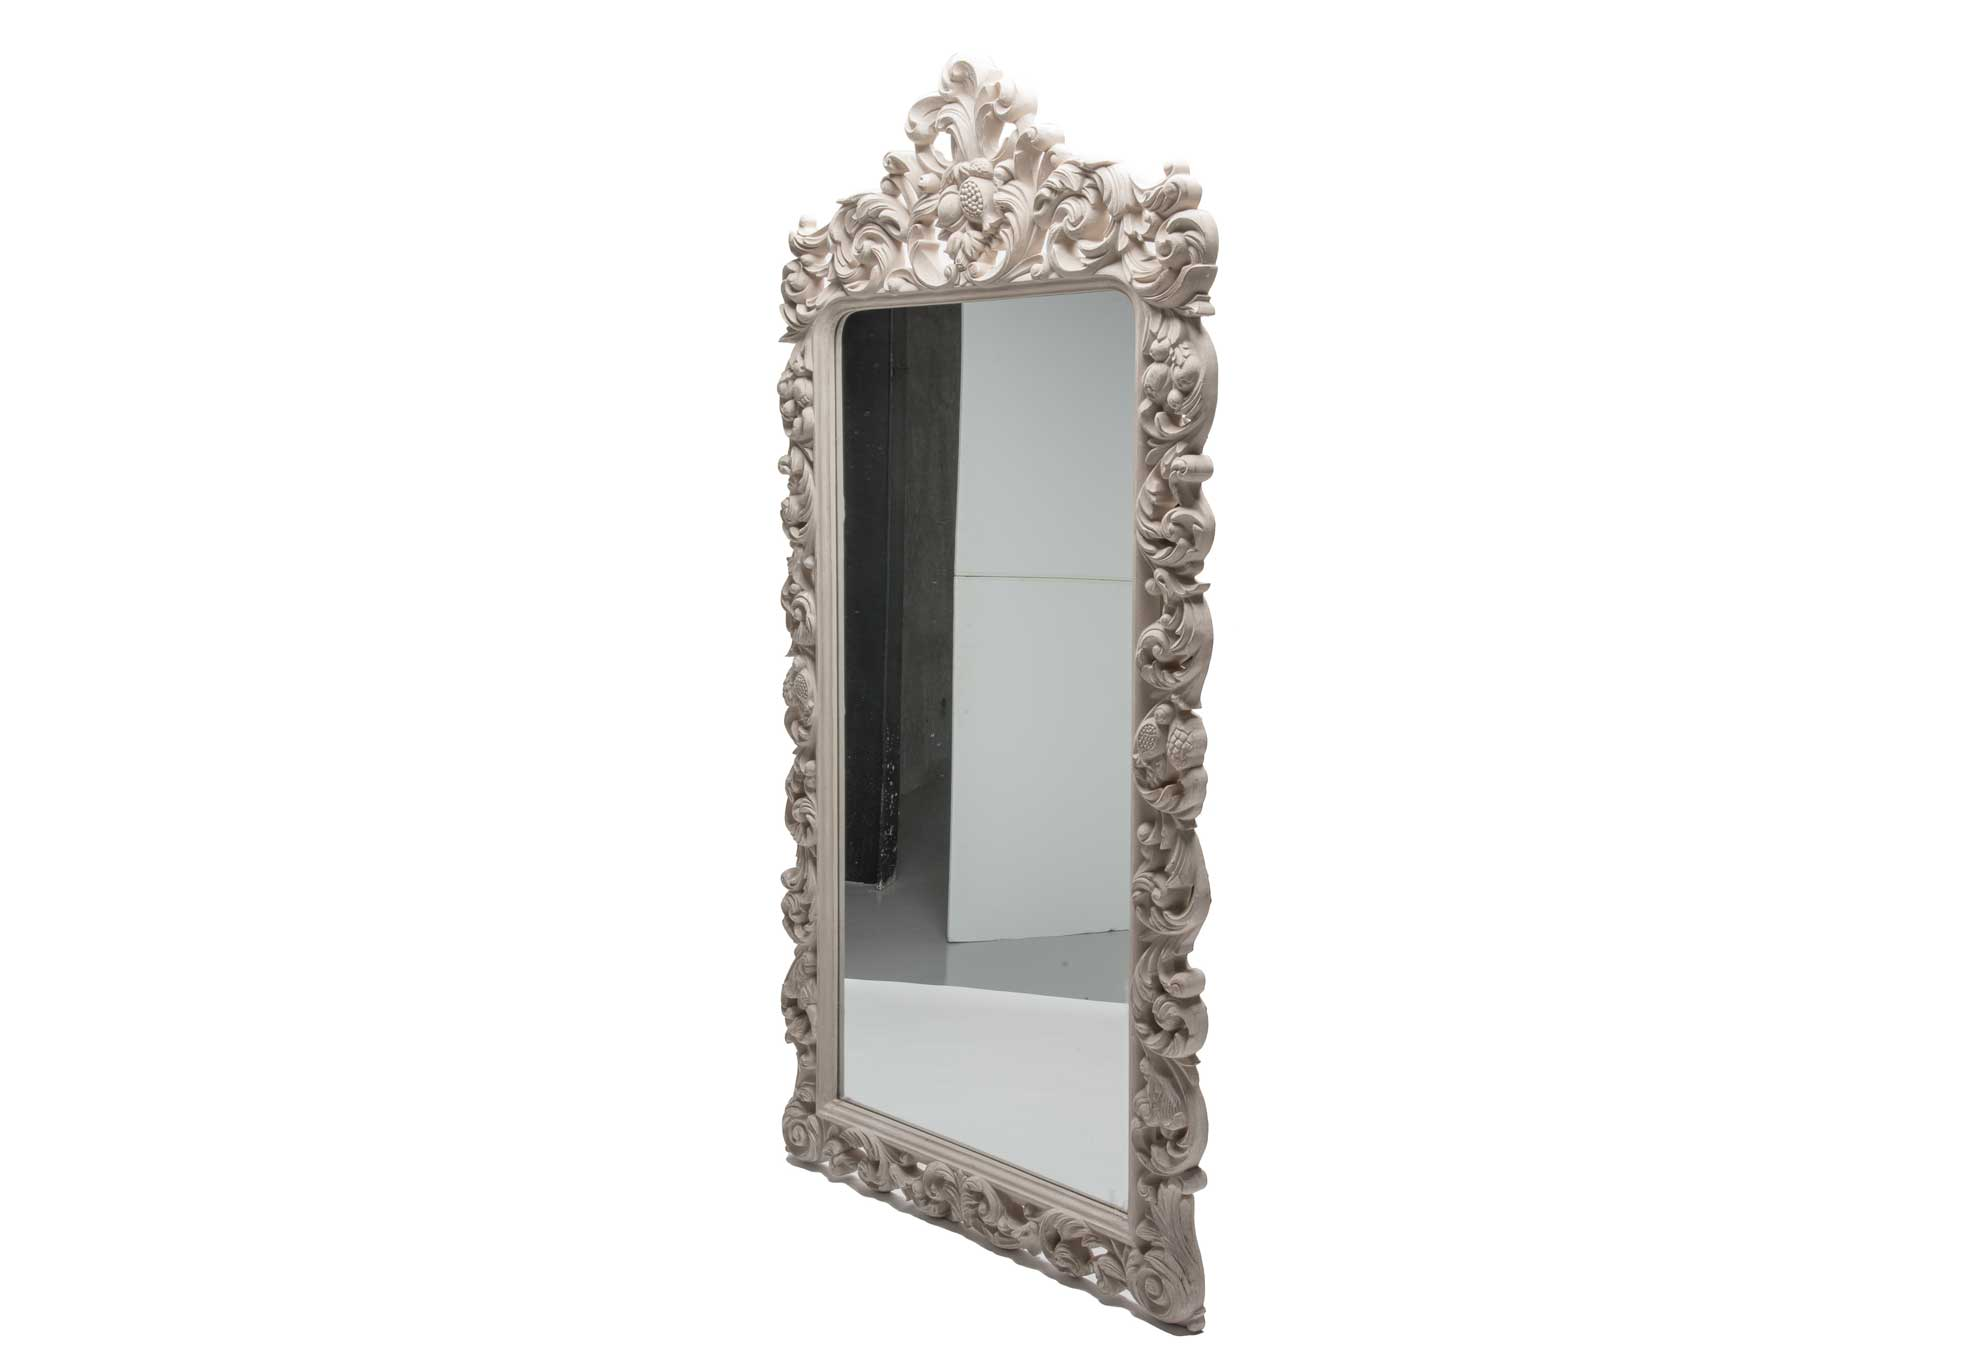 silk-estate-marquee-weddings-and-events-styling-and-hire-decore-carved-frame-mirror